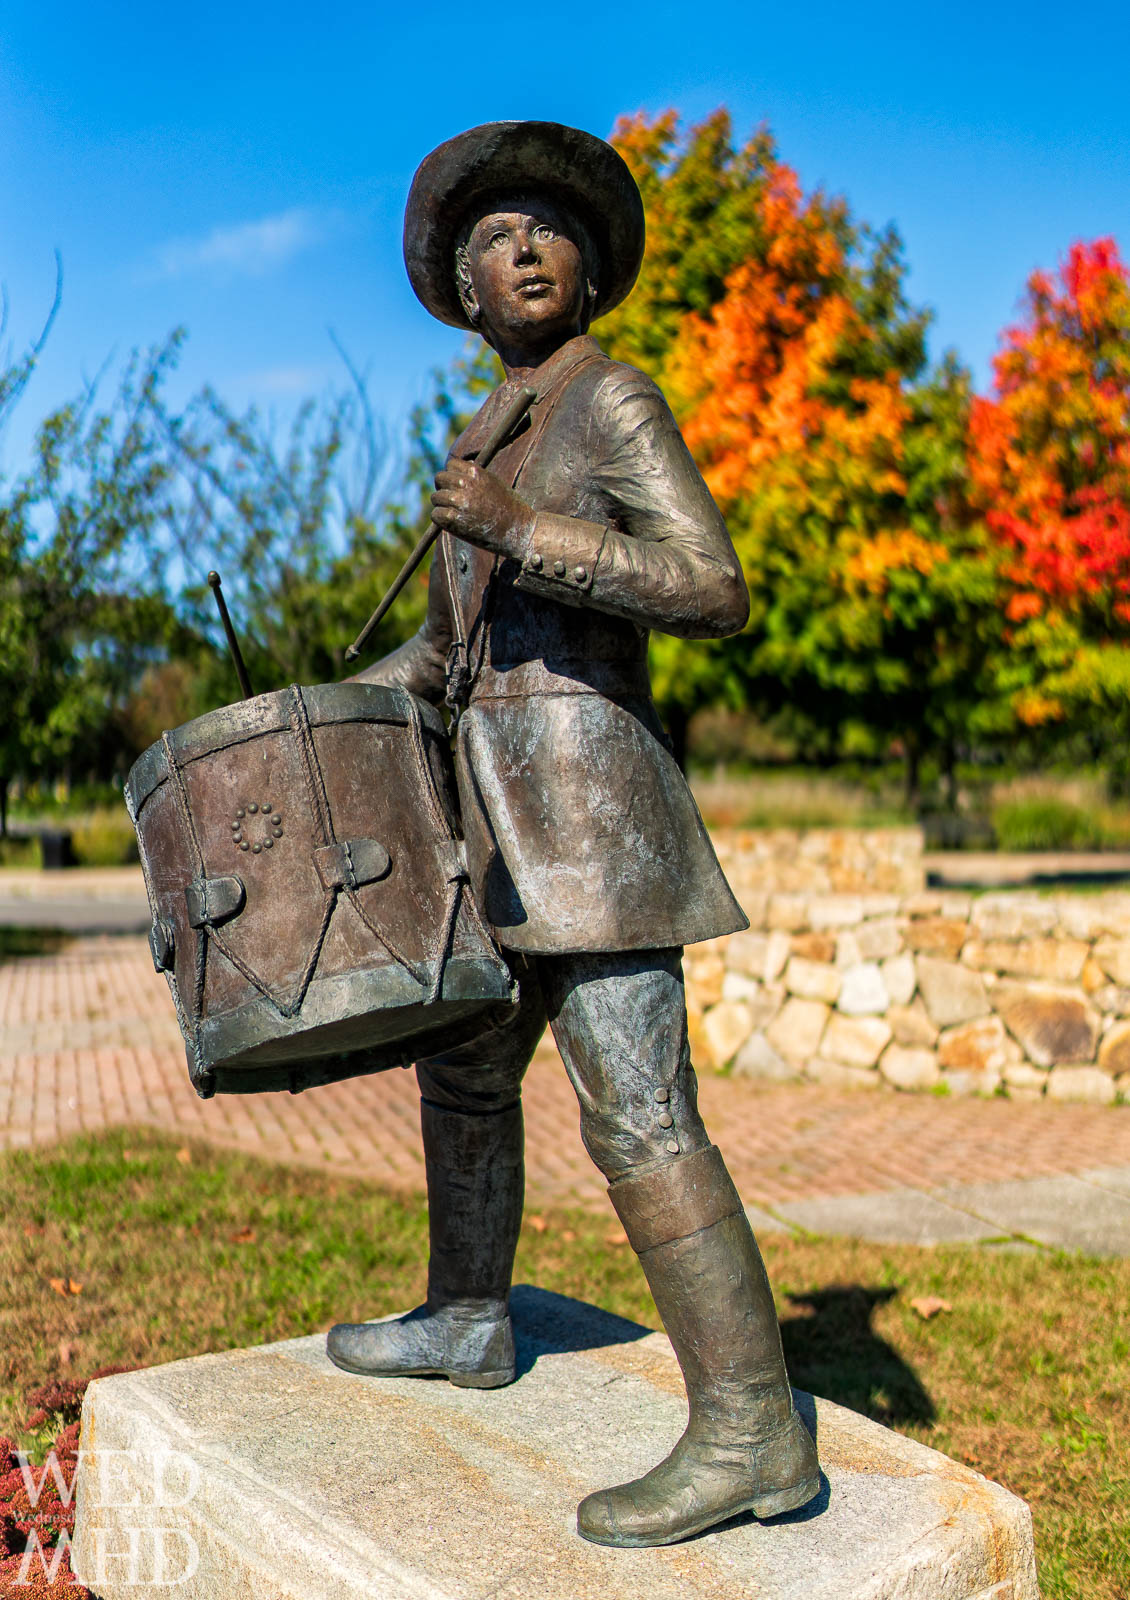 A sculpture of the little drummer boy stands at Marblehead High School on a bright Fall day with foliage as backdrop